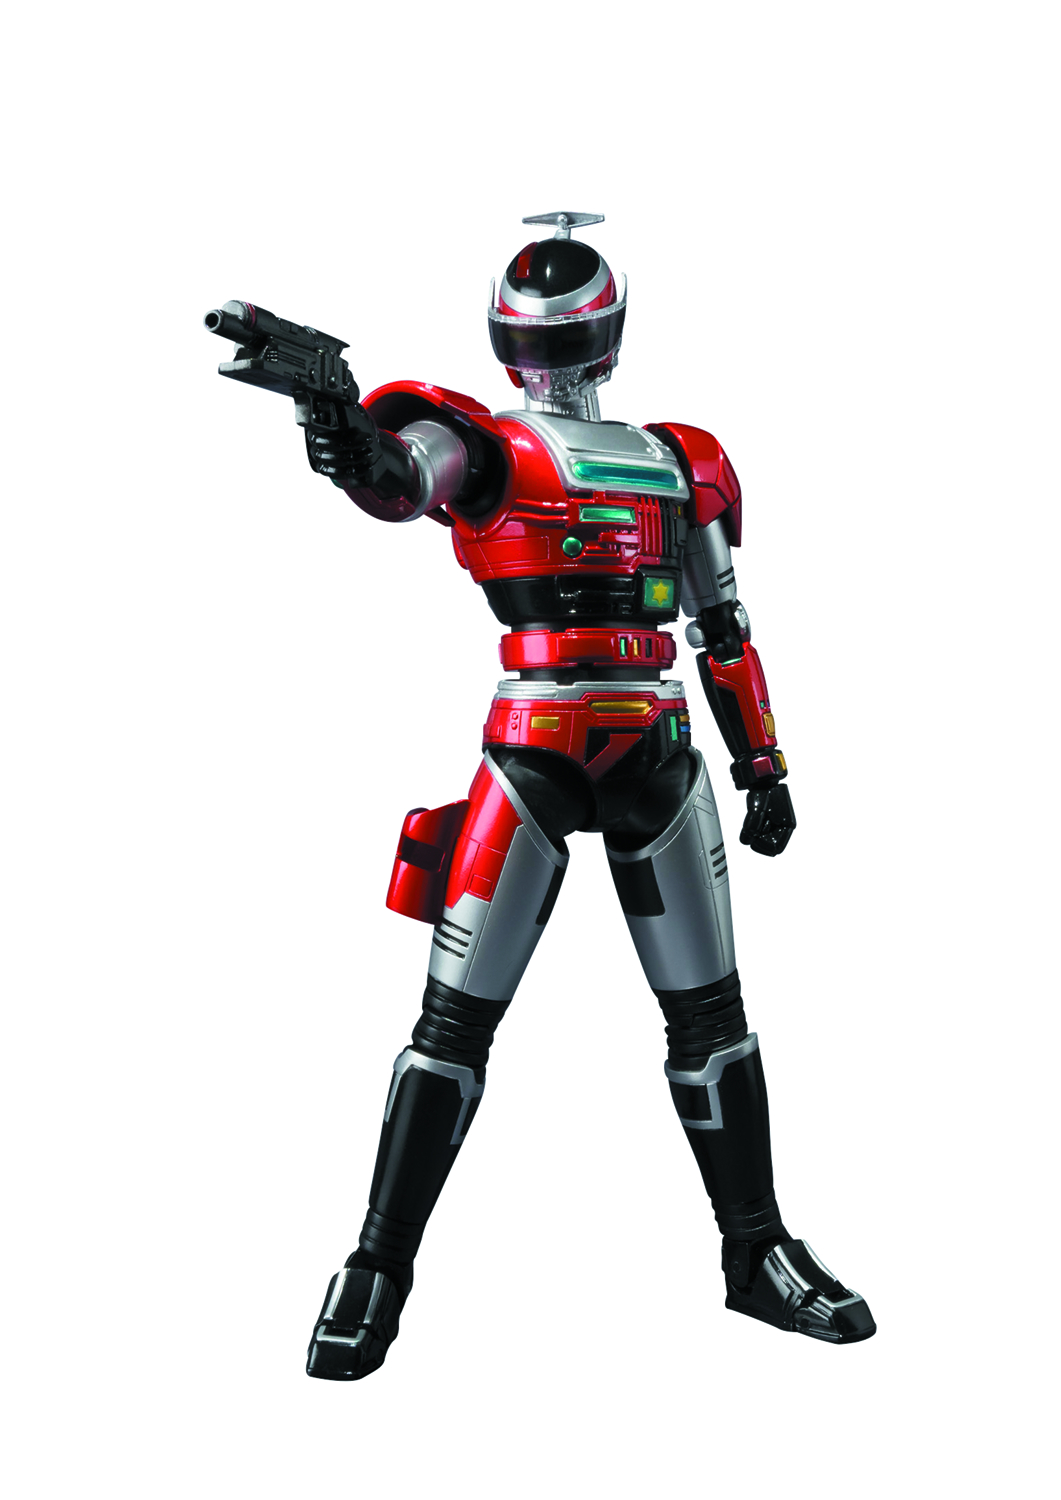 SPECIAL RESCUE POLICE INSPECTOR FIRE S.H.FIGUARTS AF